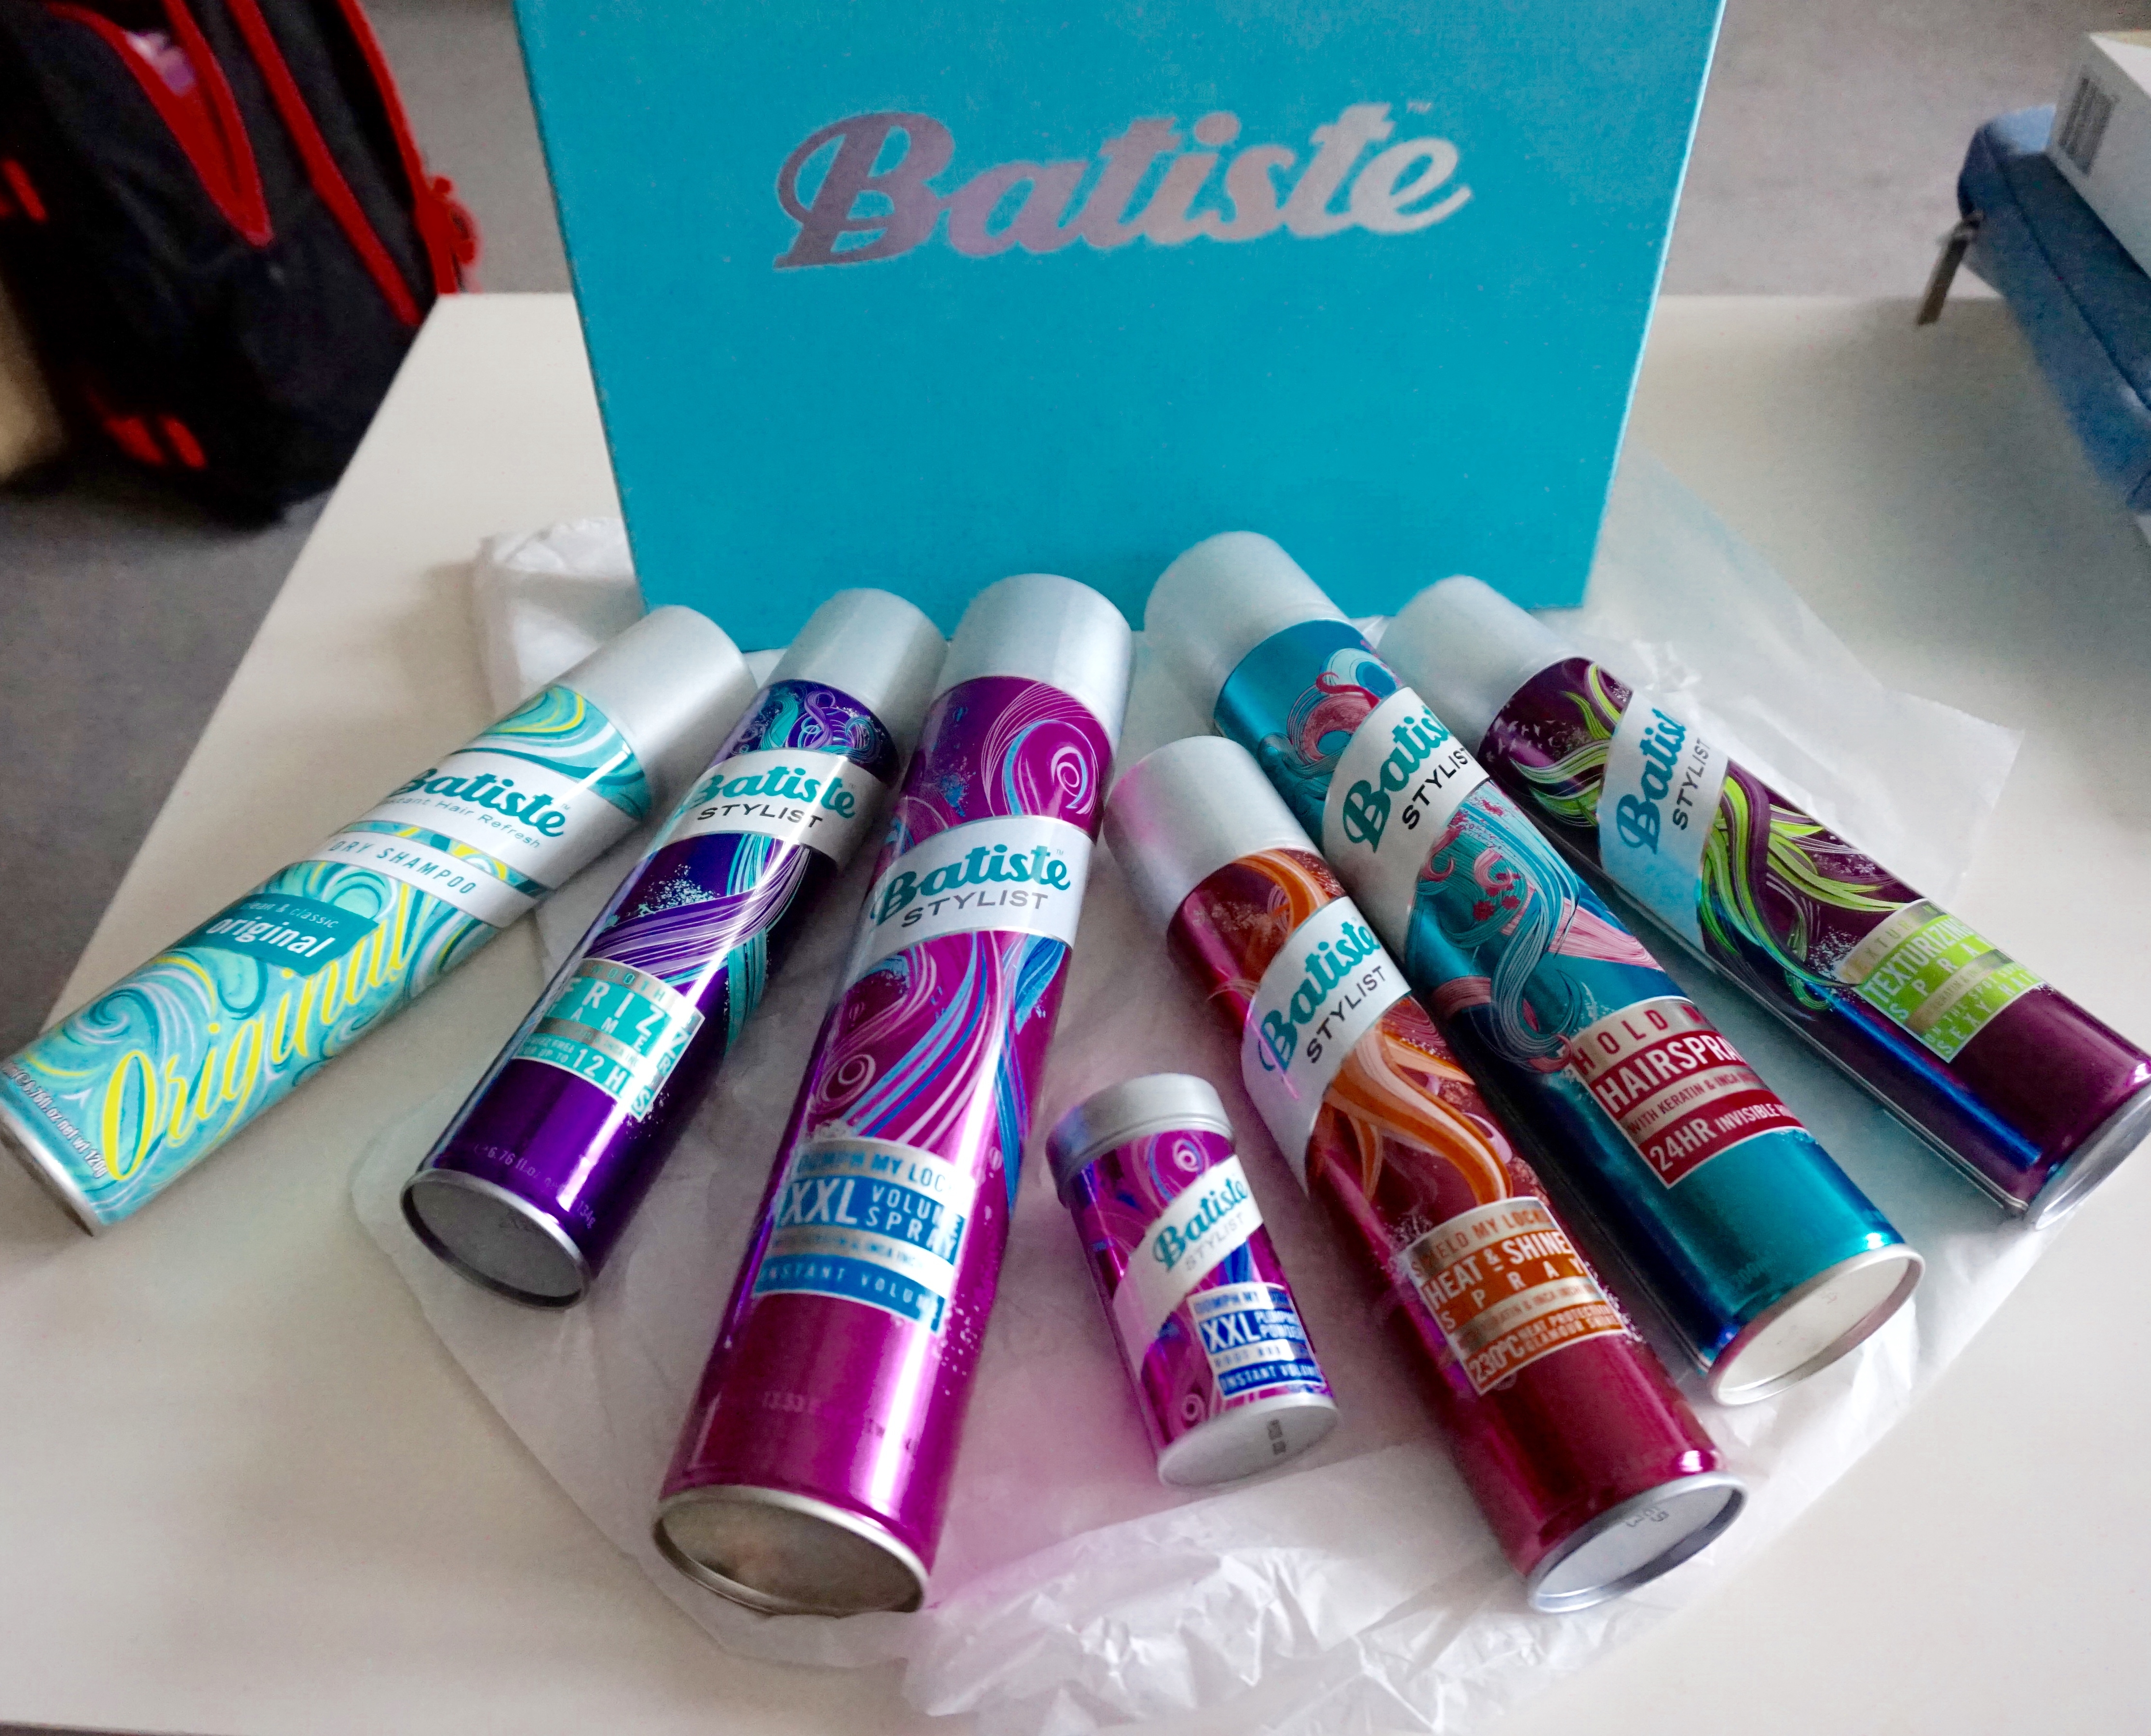 batiste-stylist-range-new-six-products